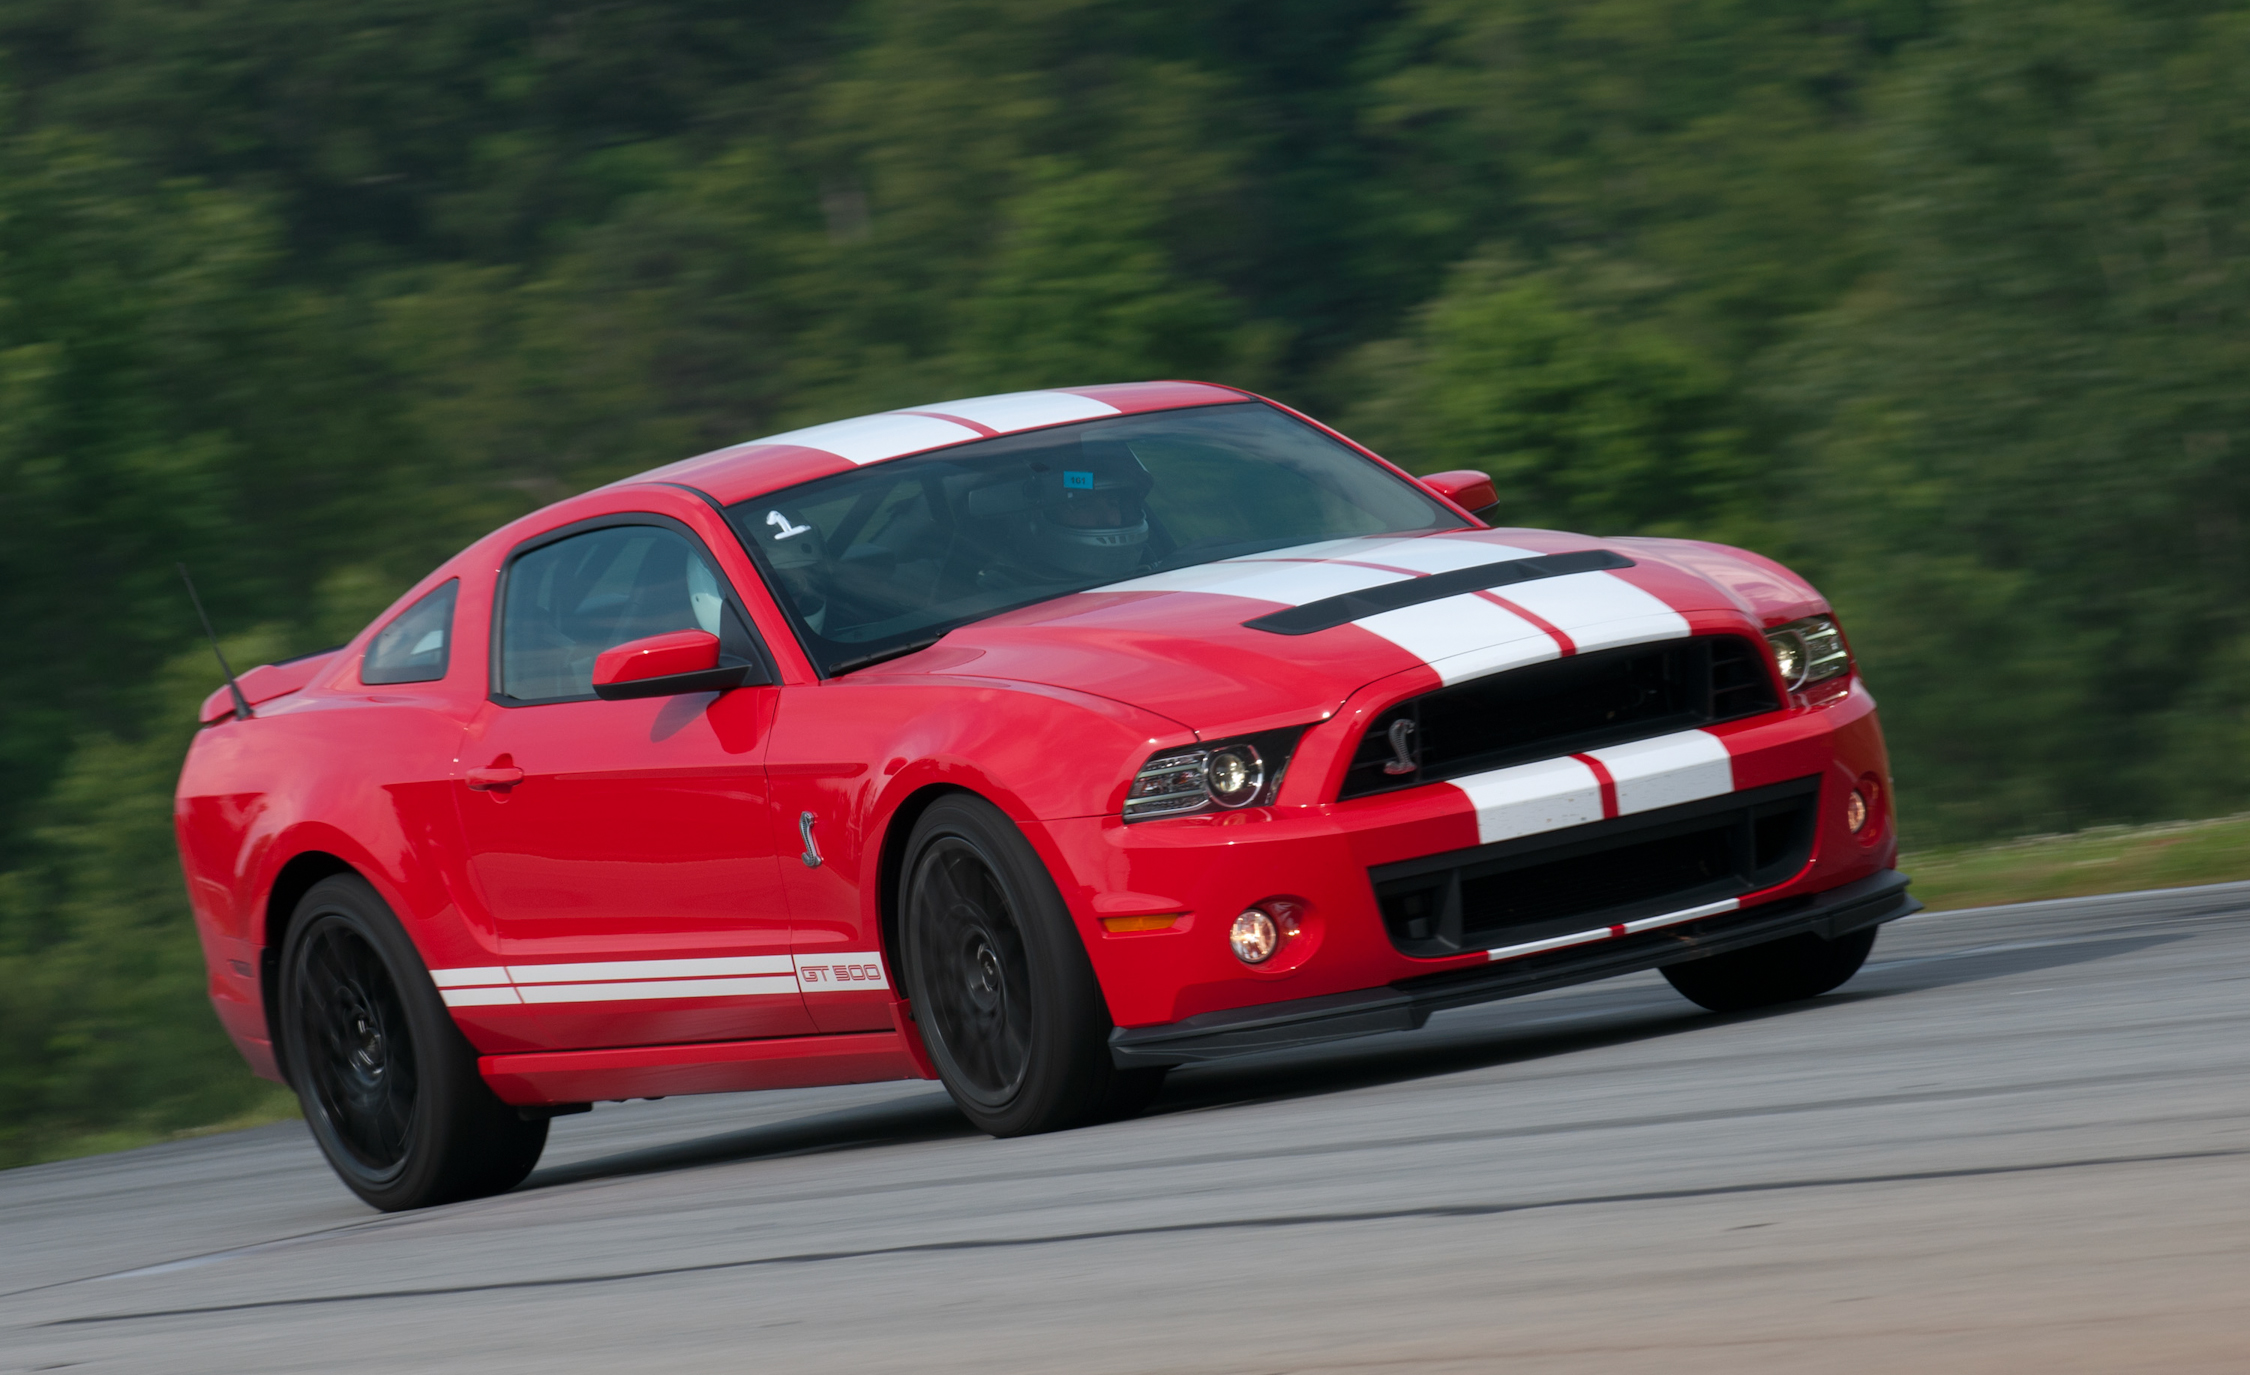 2013 Ford Mustang Shelby GT500 Red (View 10 of 47)